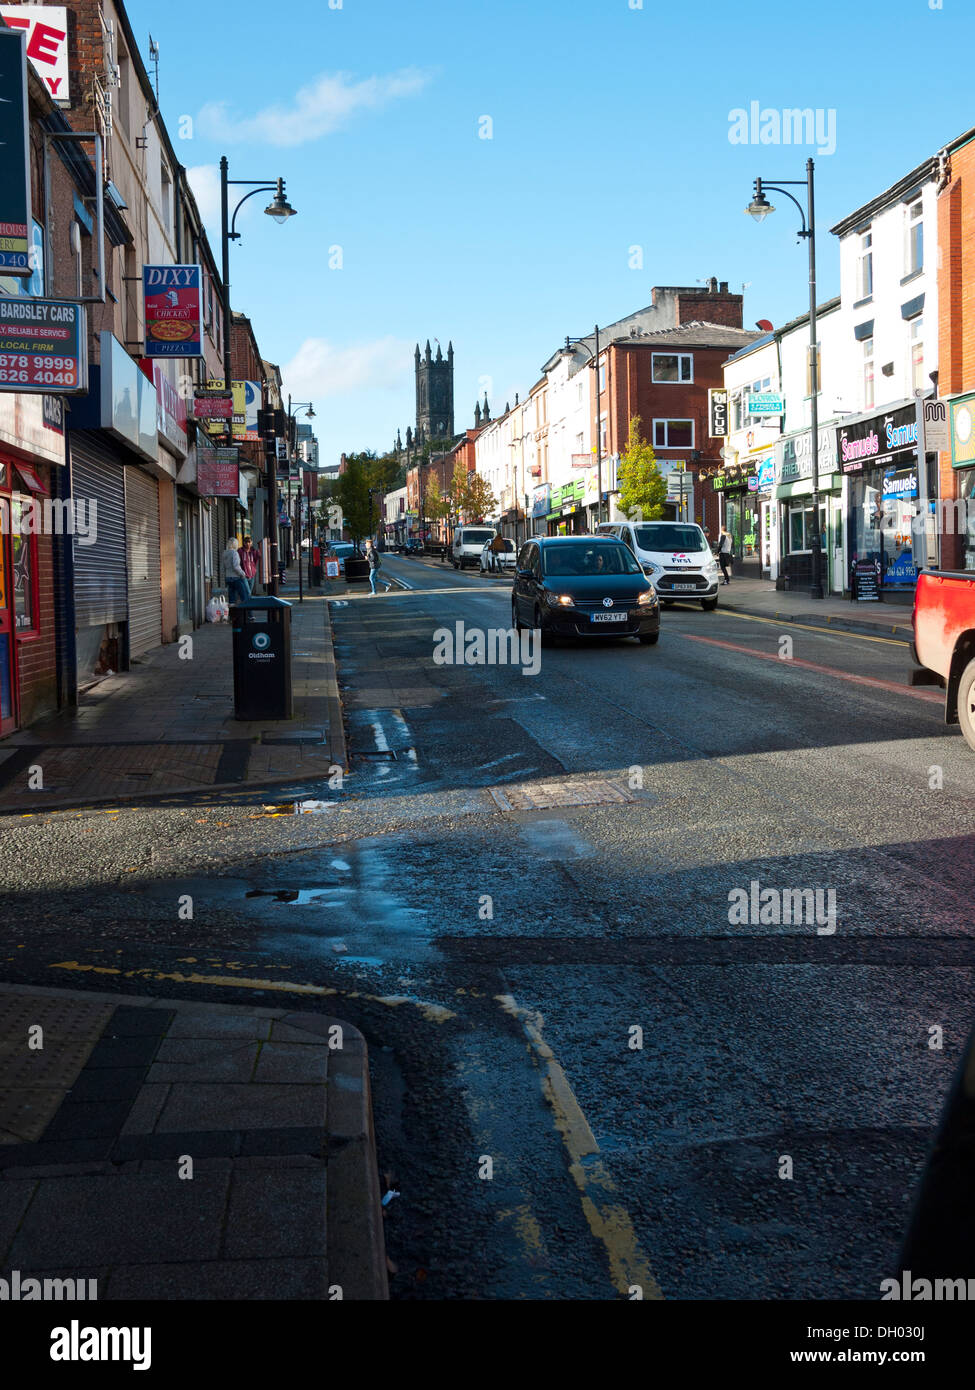 Looking up Yorkshire street towards Oldham Town Centre, Oldham, Greater Manchester, UK. - Stock Image